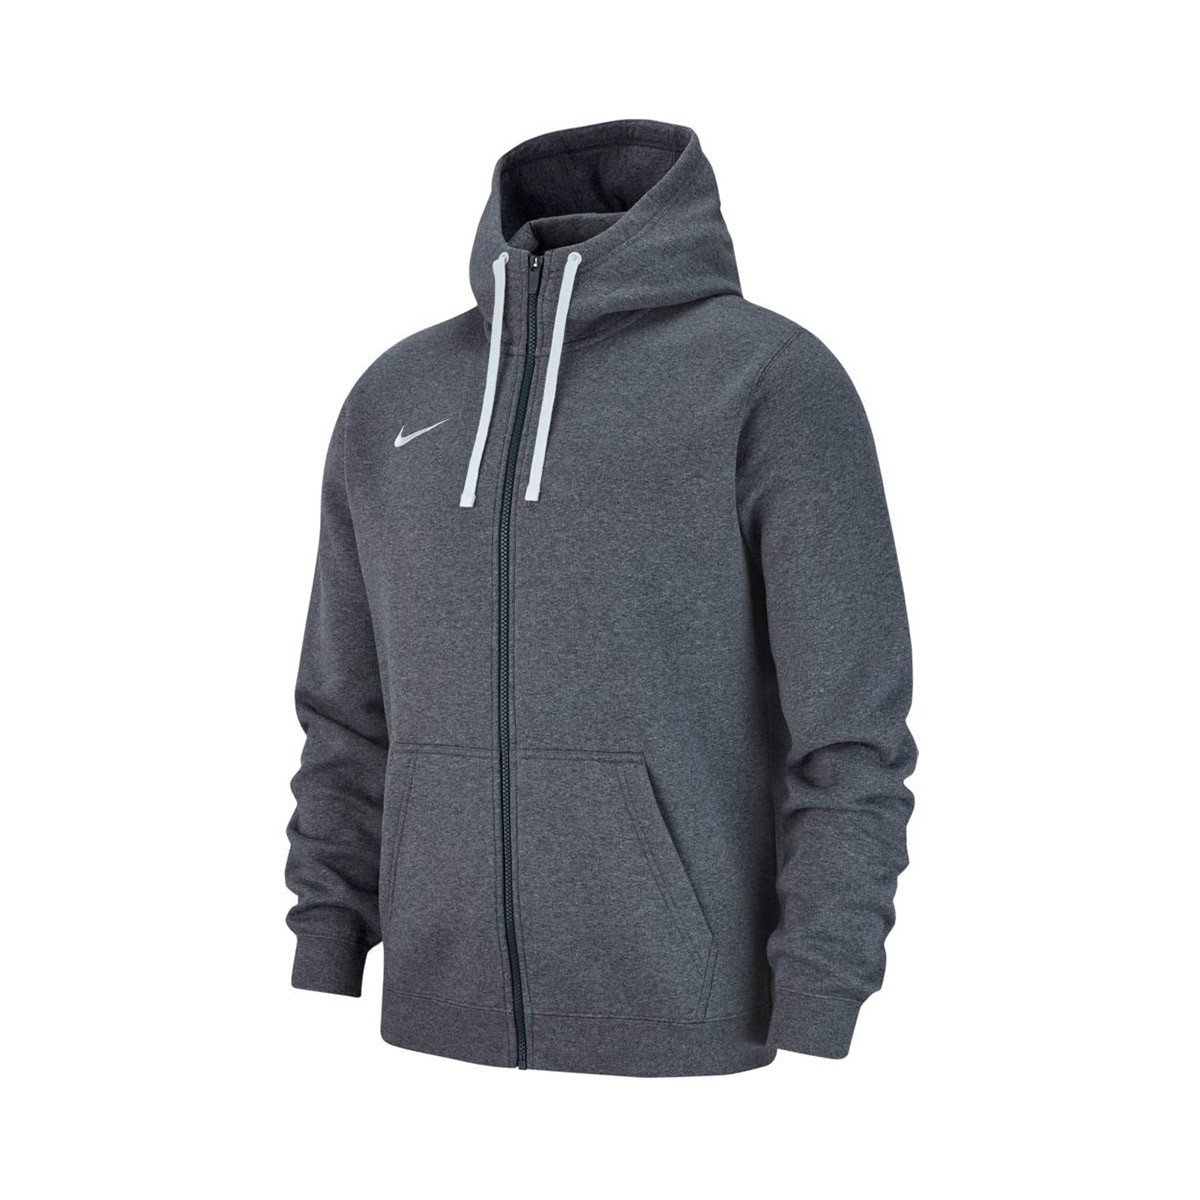 19a233a3d34e2 Chaqueta Nike Club 19 Full-Zip Hoodie Niño Charcoal heather-White - Tienda  de fútbol Fútbol Emotion